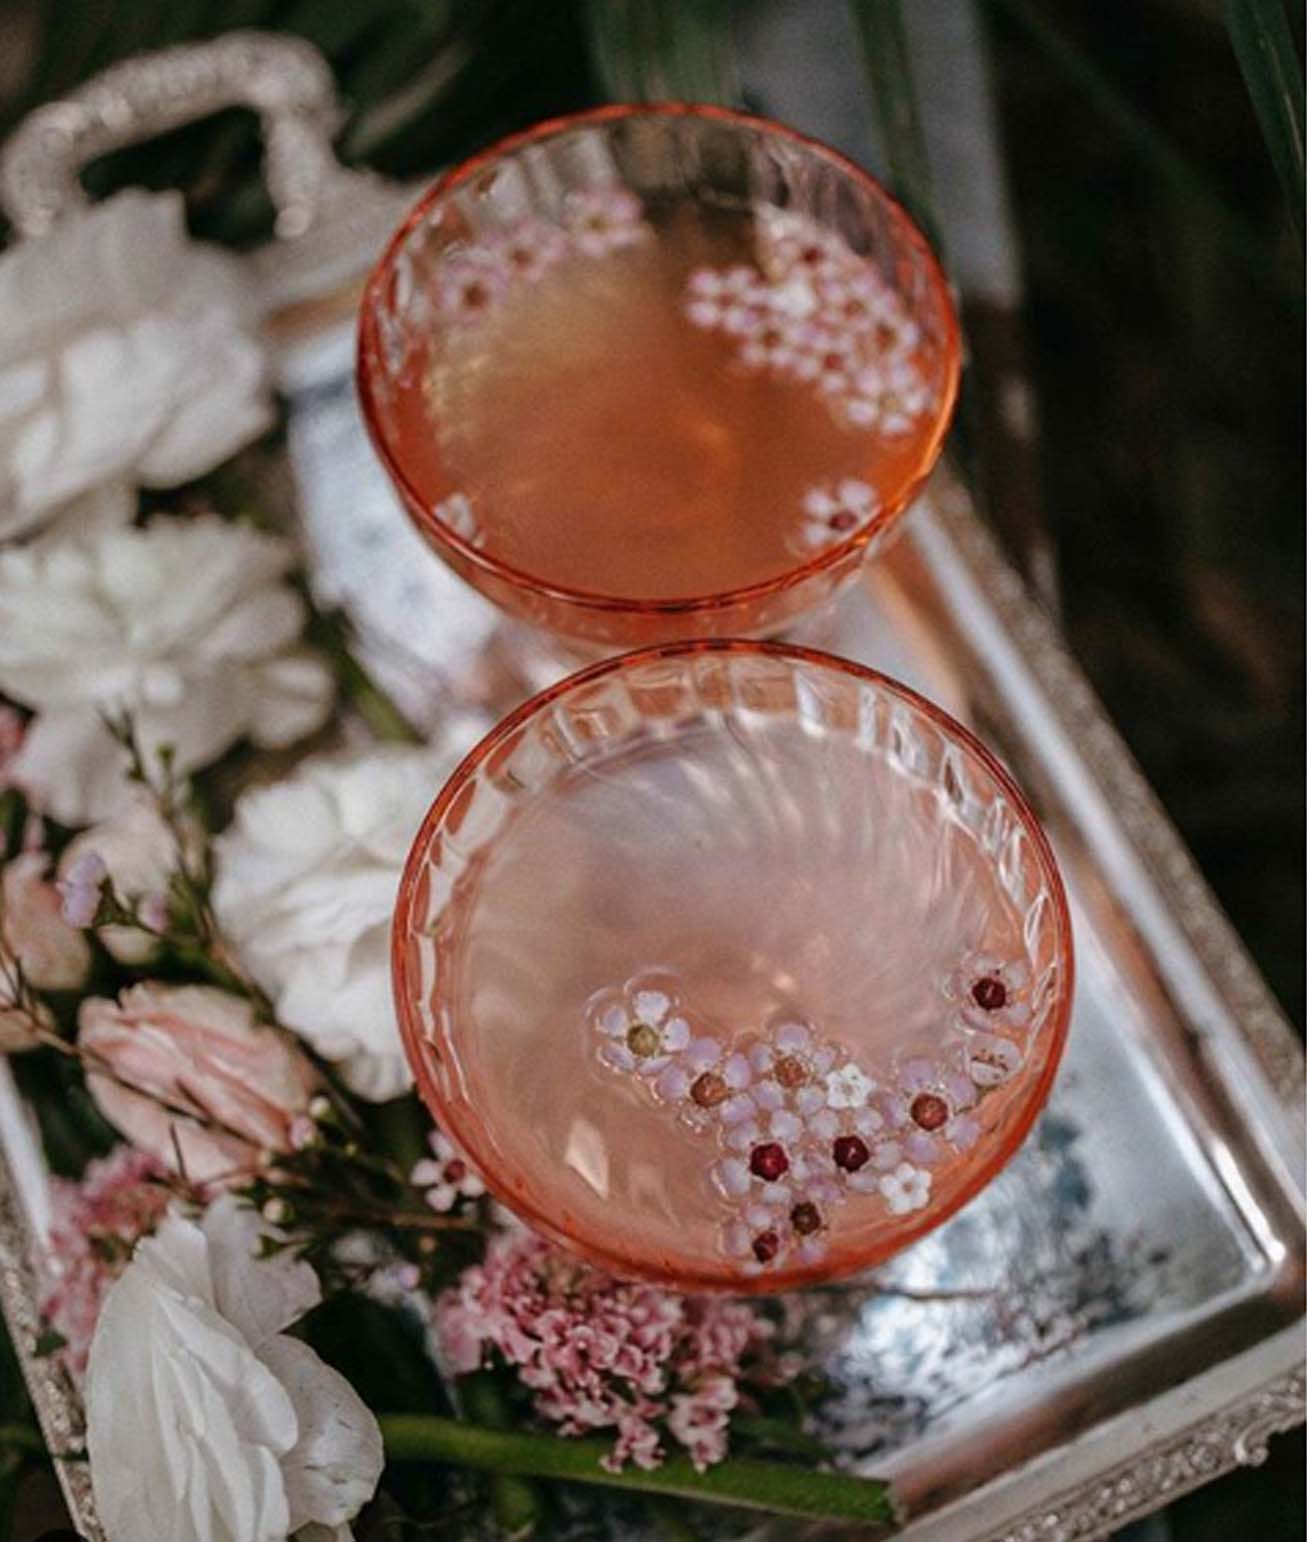 Romantic Styling Ideas For Small Intimate Weddings - ANTIQUE VINTAGE GLASSWEAR